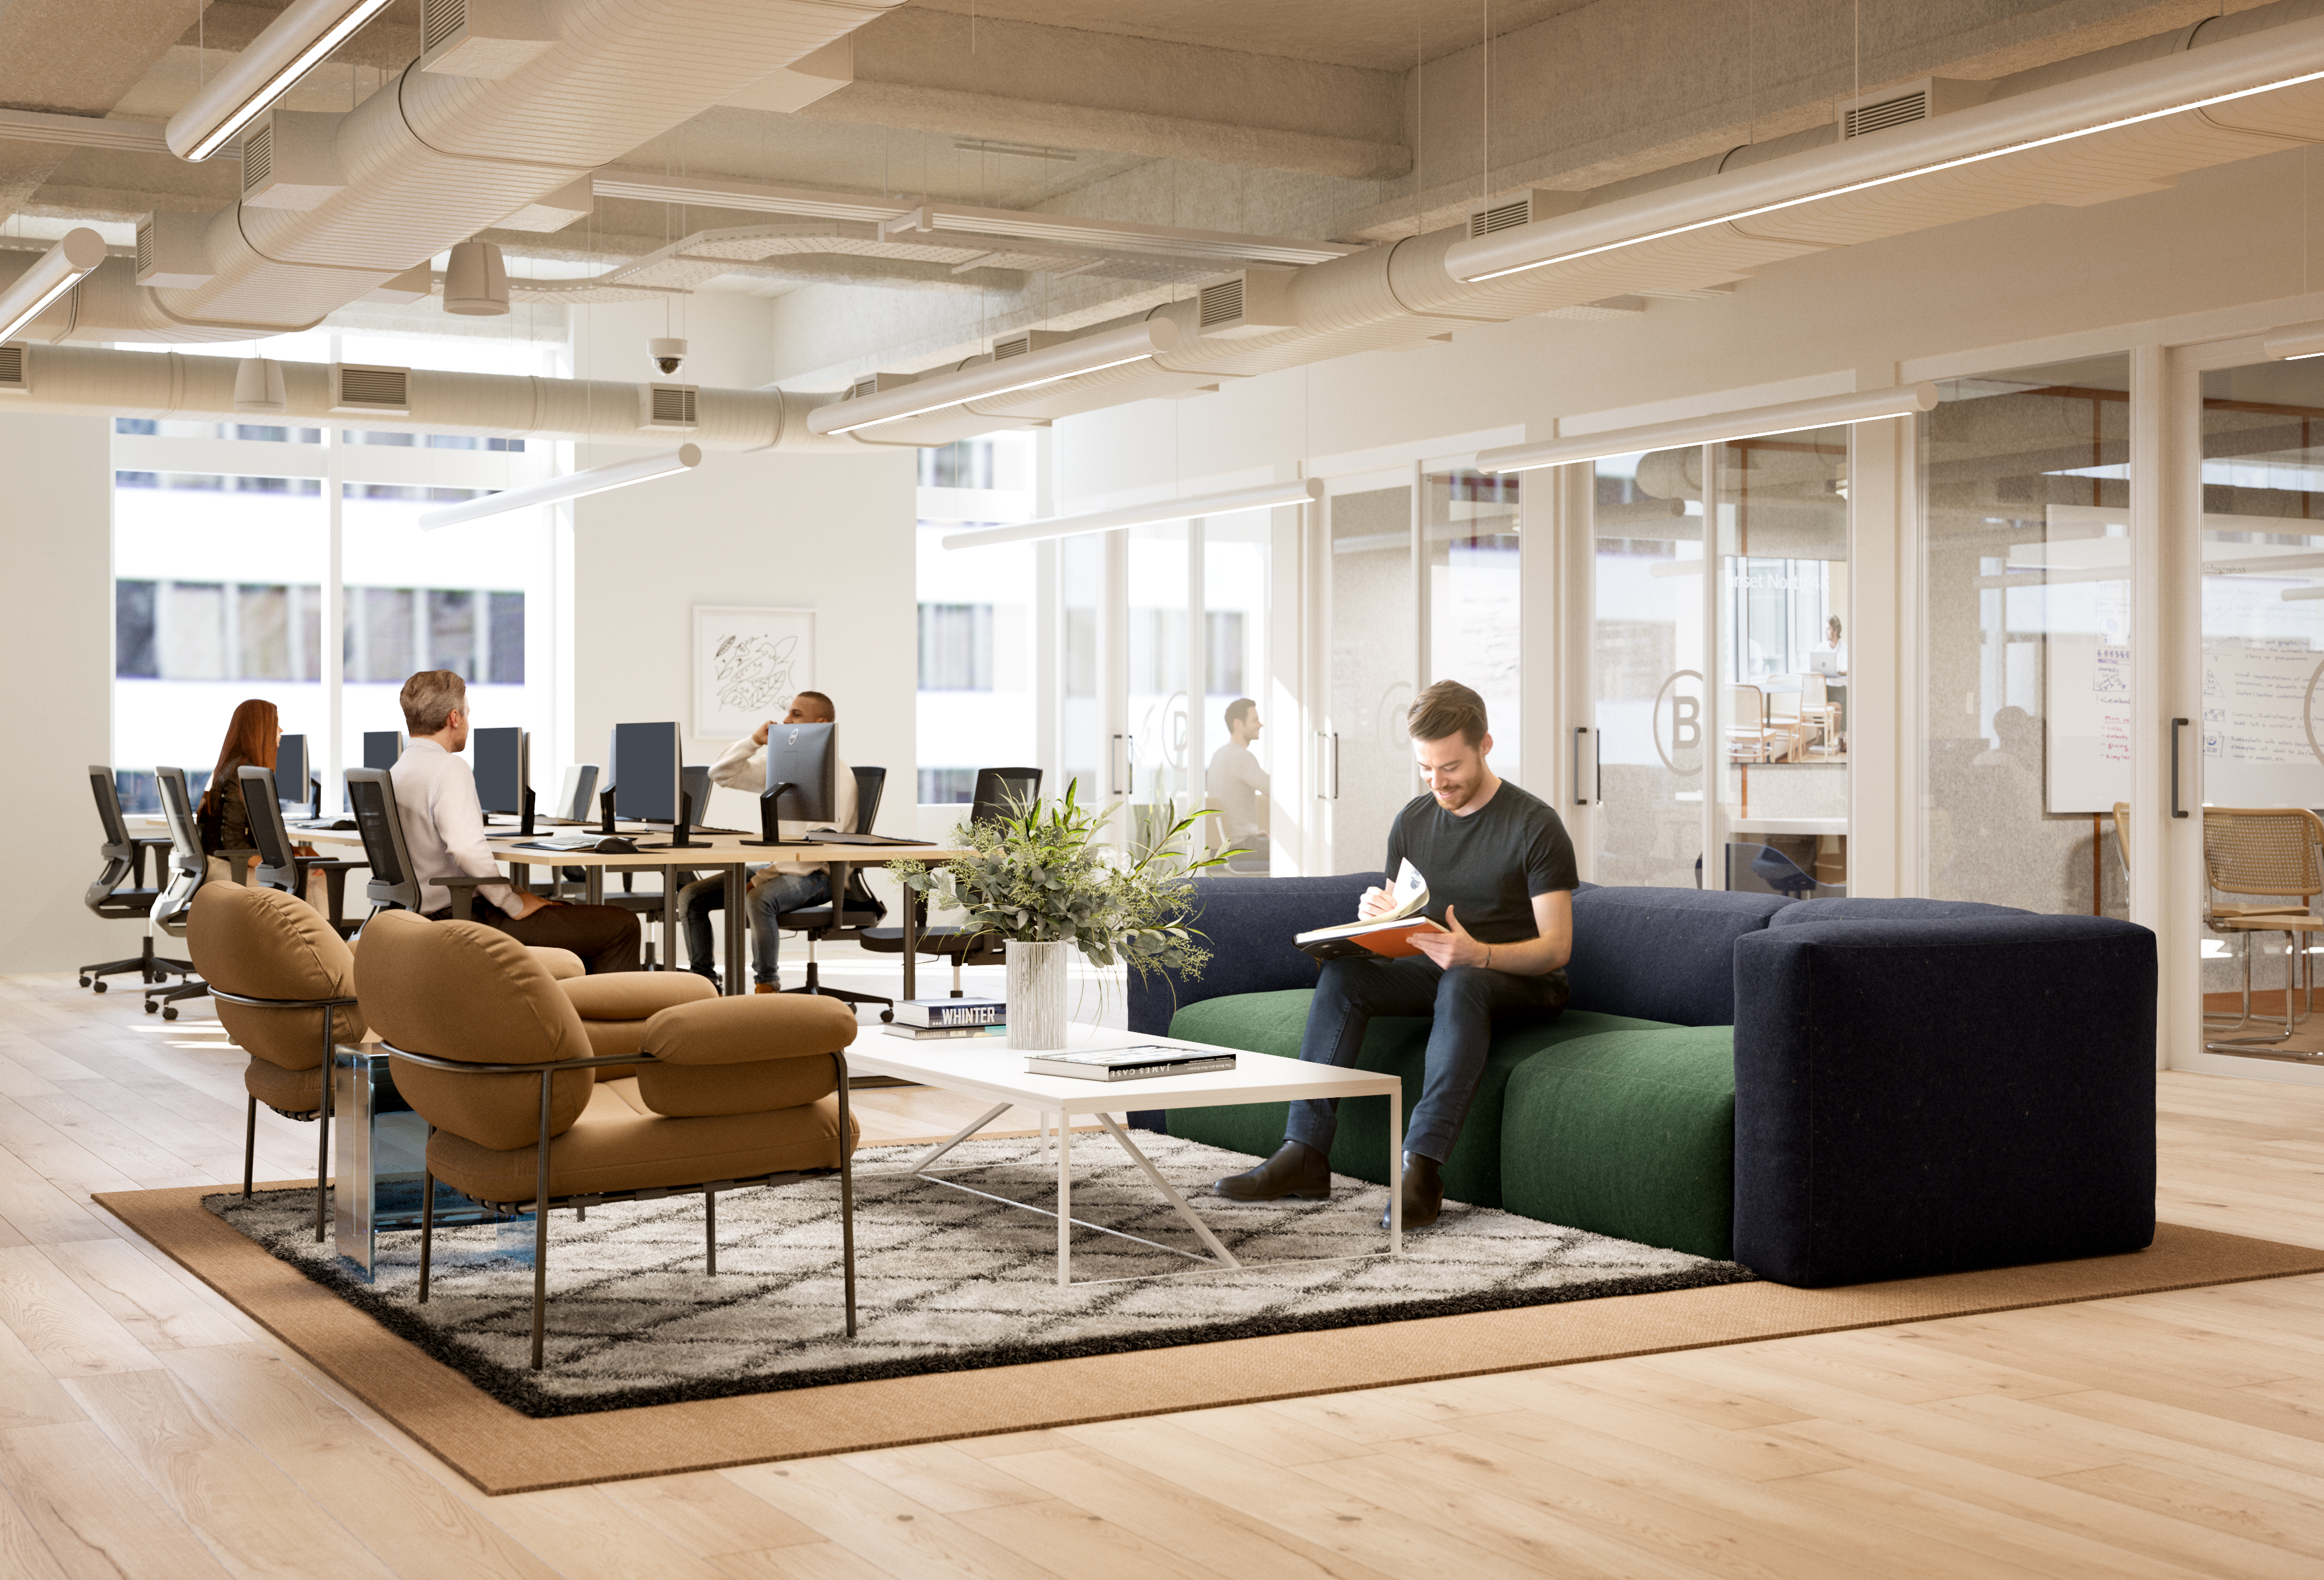 Spazio Italiano San Francisco 600 california st - coworking & private offices | wework